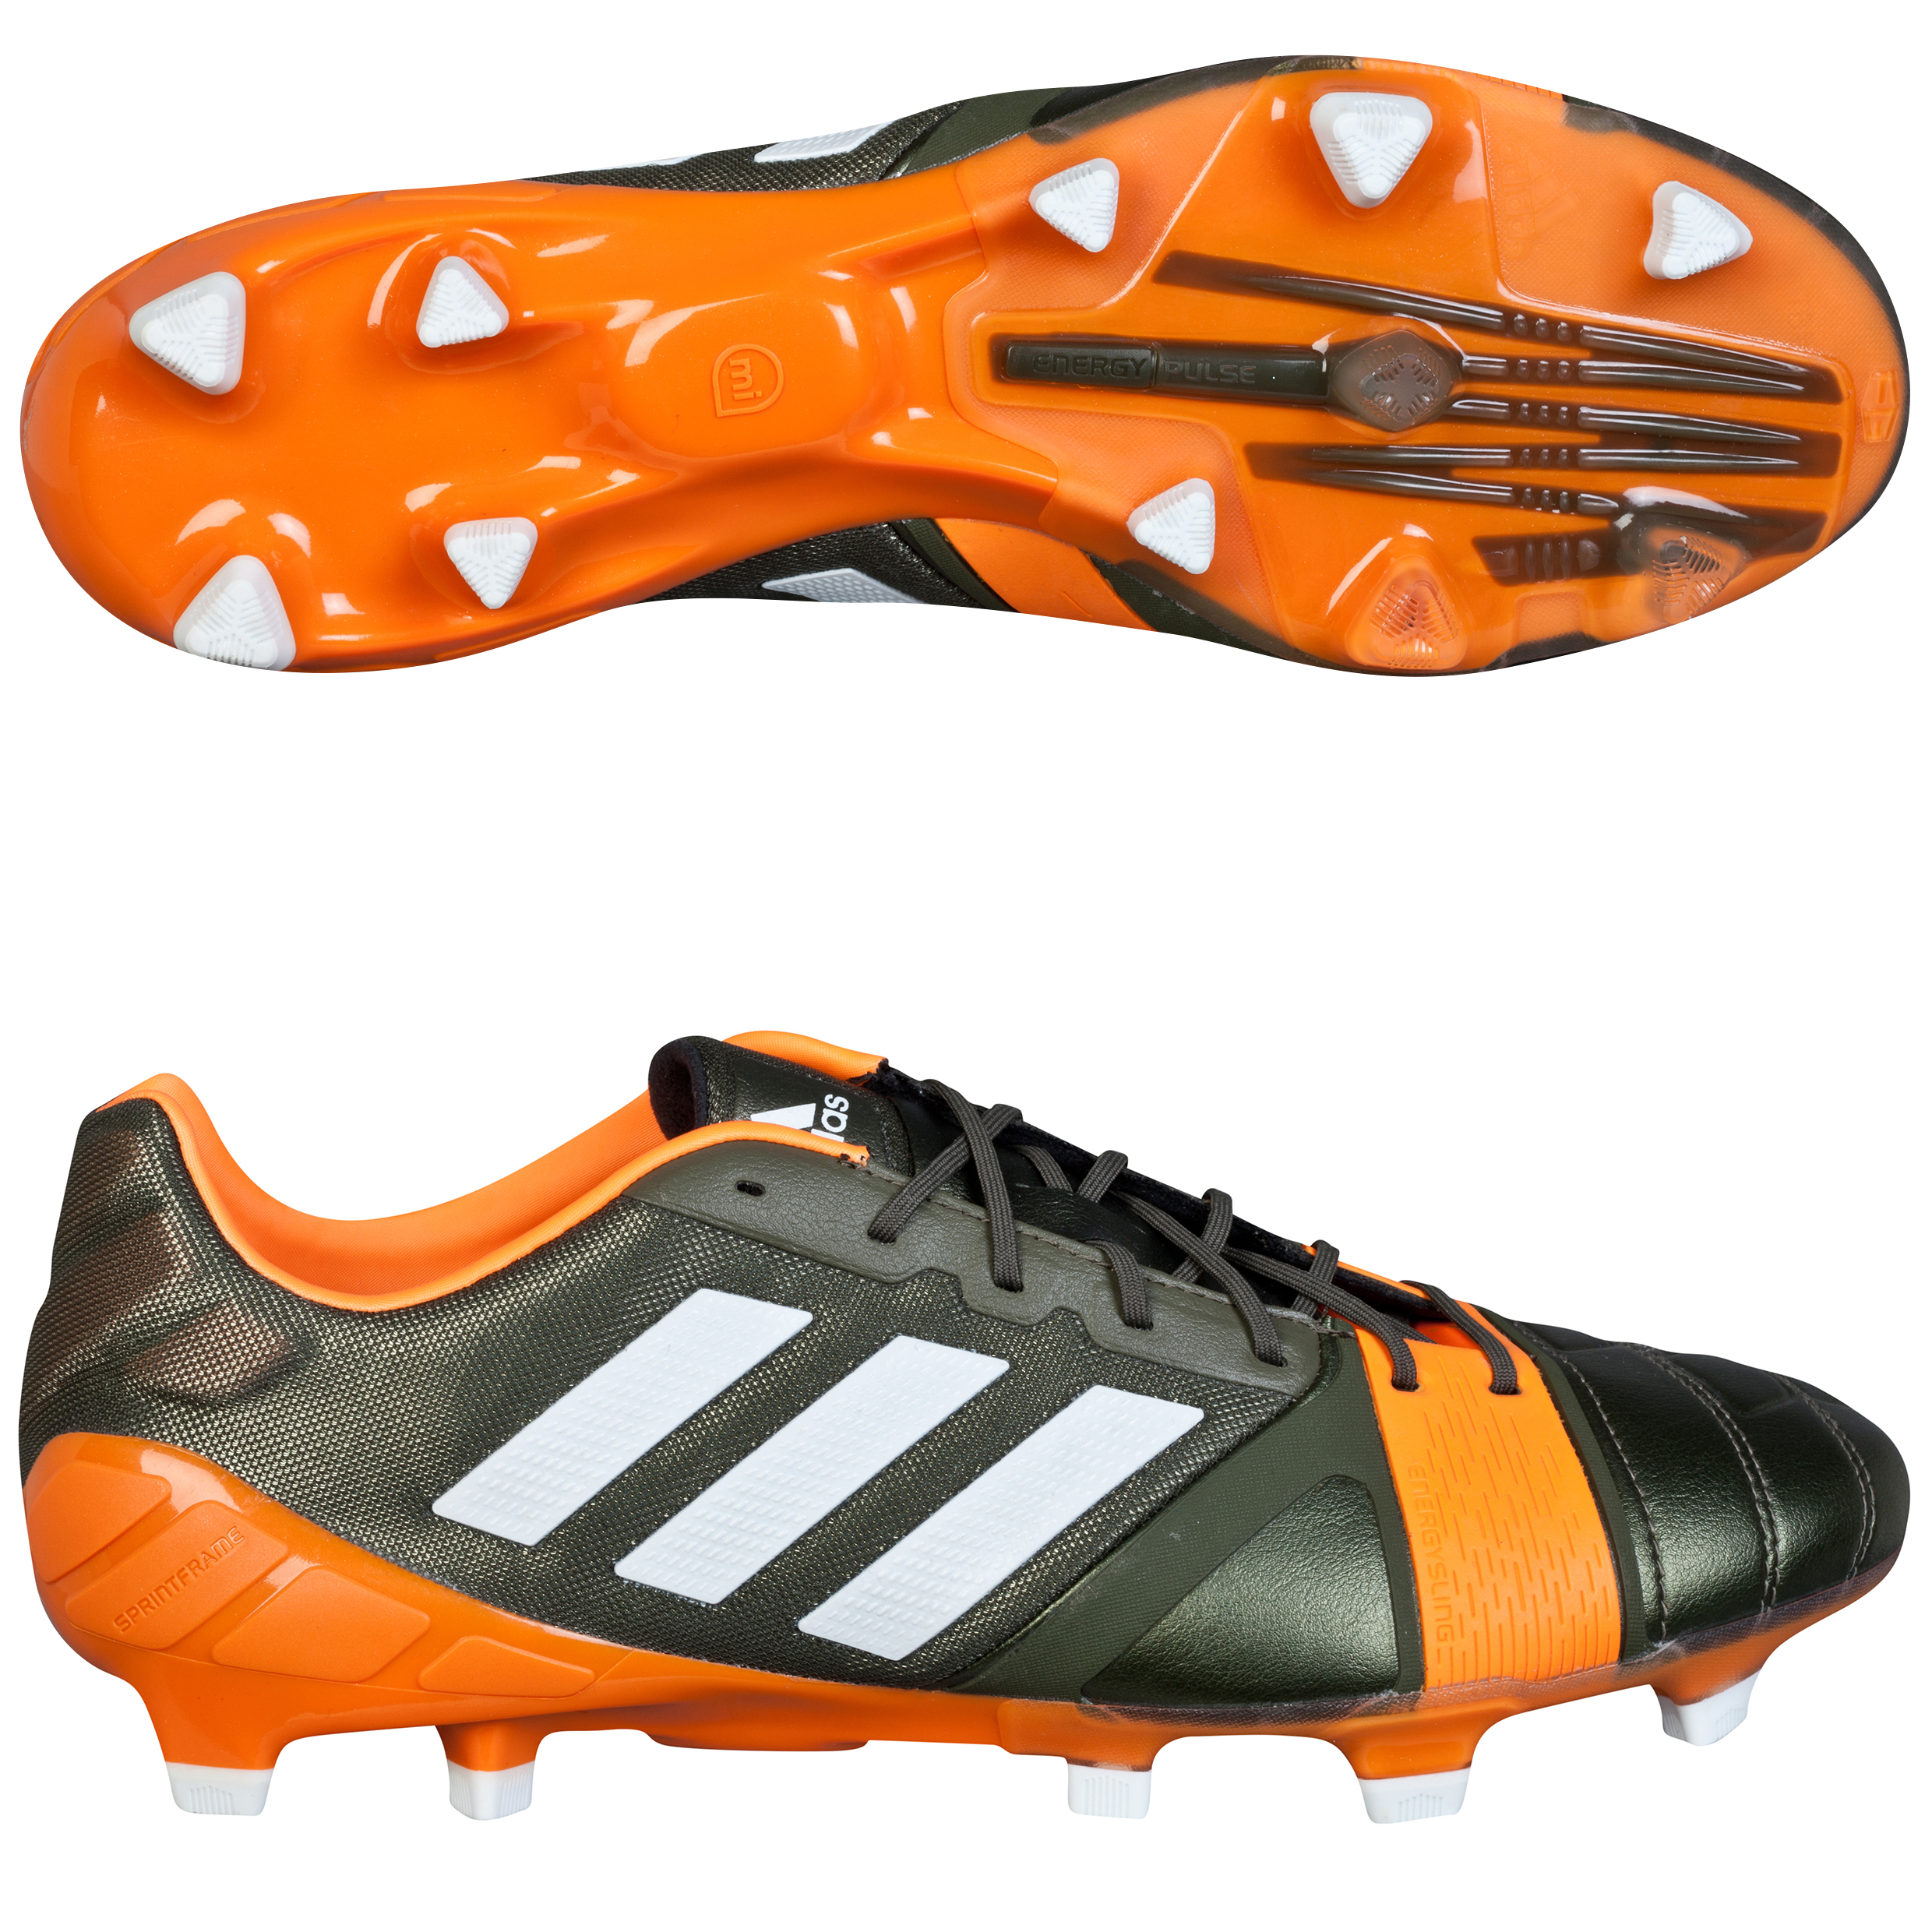 Adidas Nitrocharge 1.0 TRX Firm Ground Football Boots Dk Green